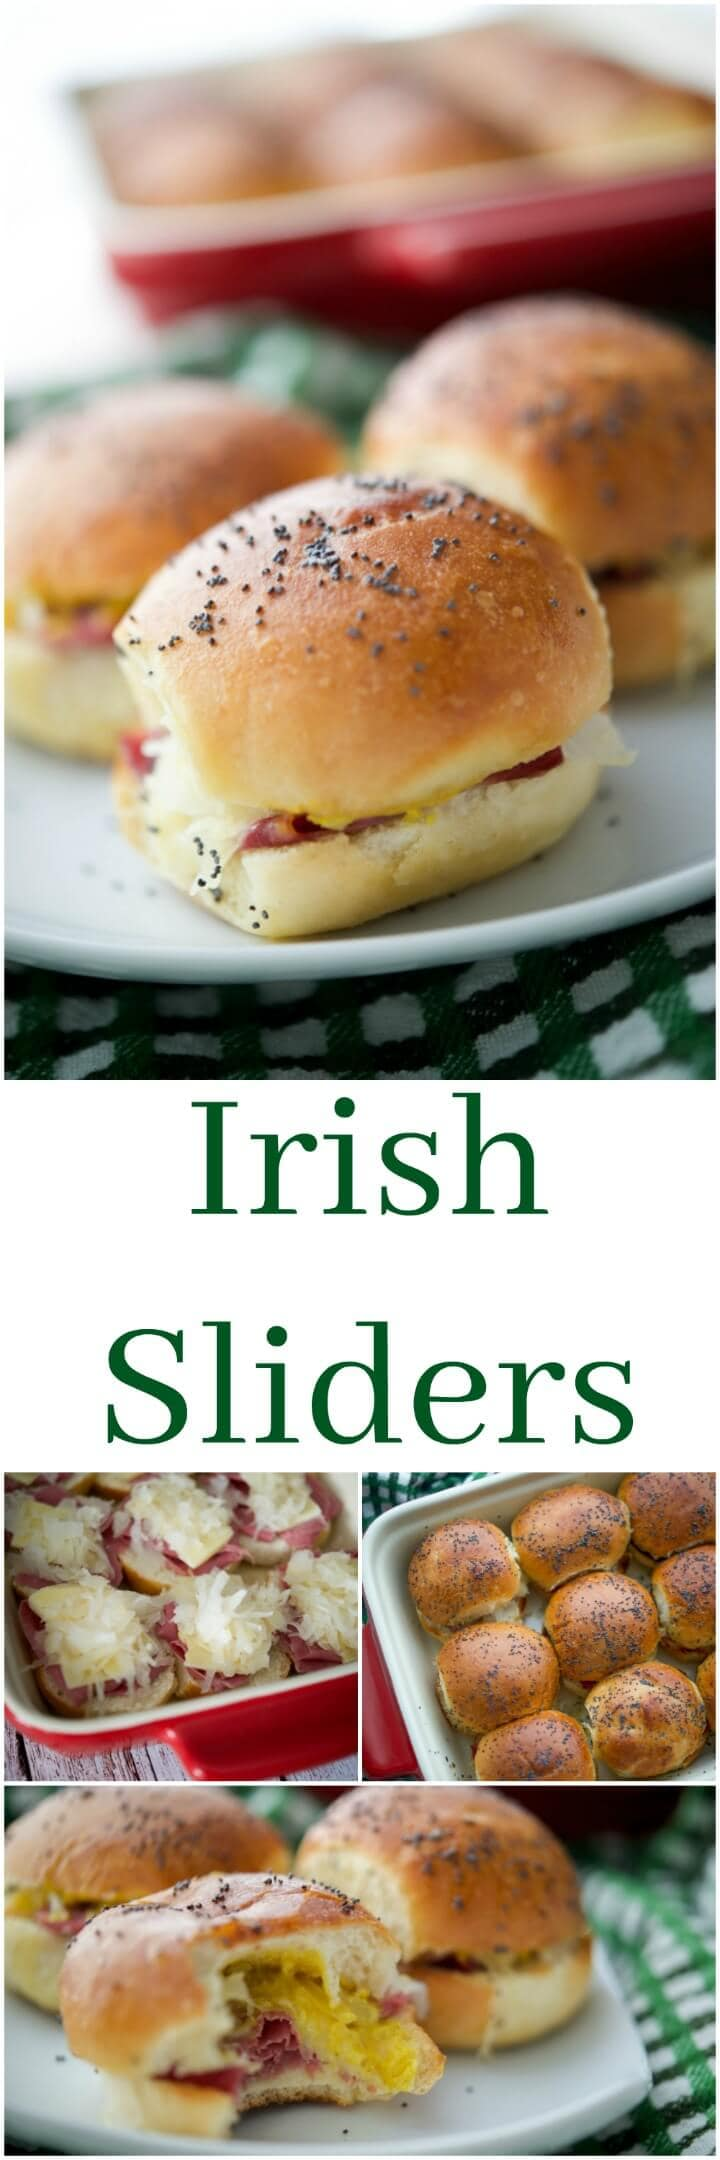 These Cheesy Irish Sliders made with corned beef, Dubliner Irish cheese, sauerkraut & Irish mustard on potato slider rolls are a must have!